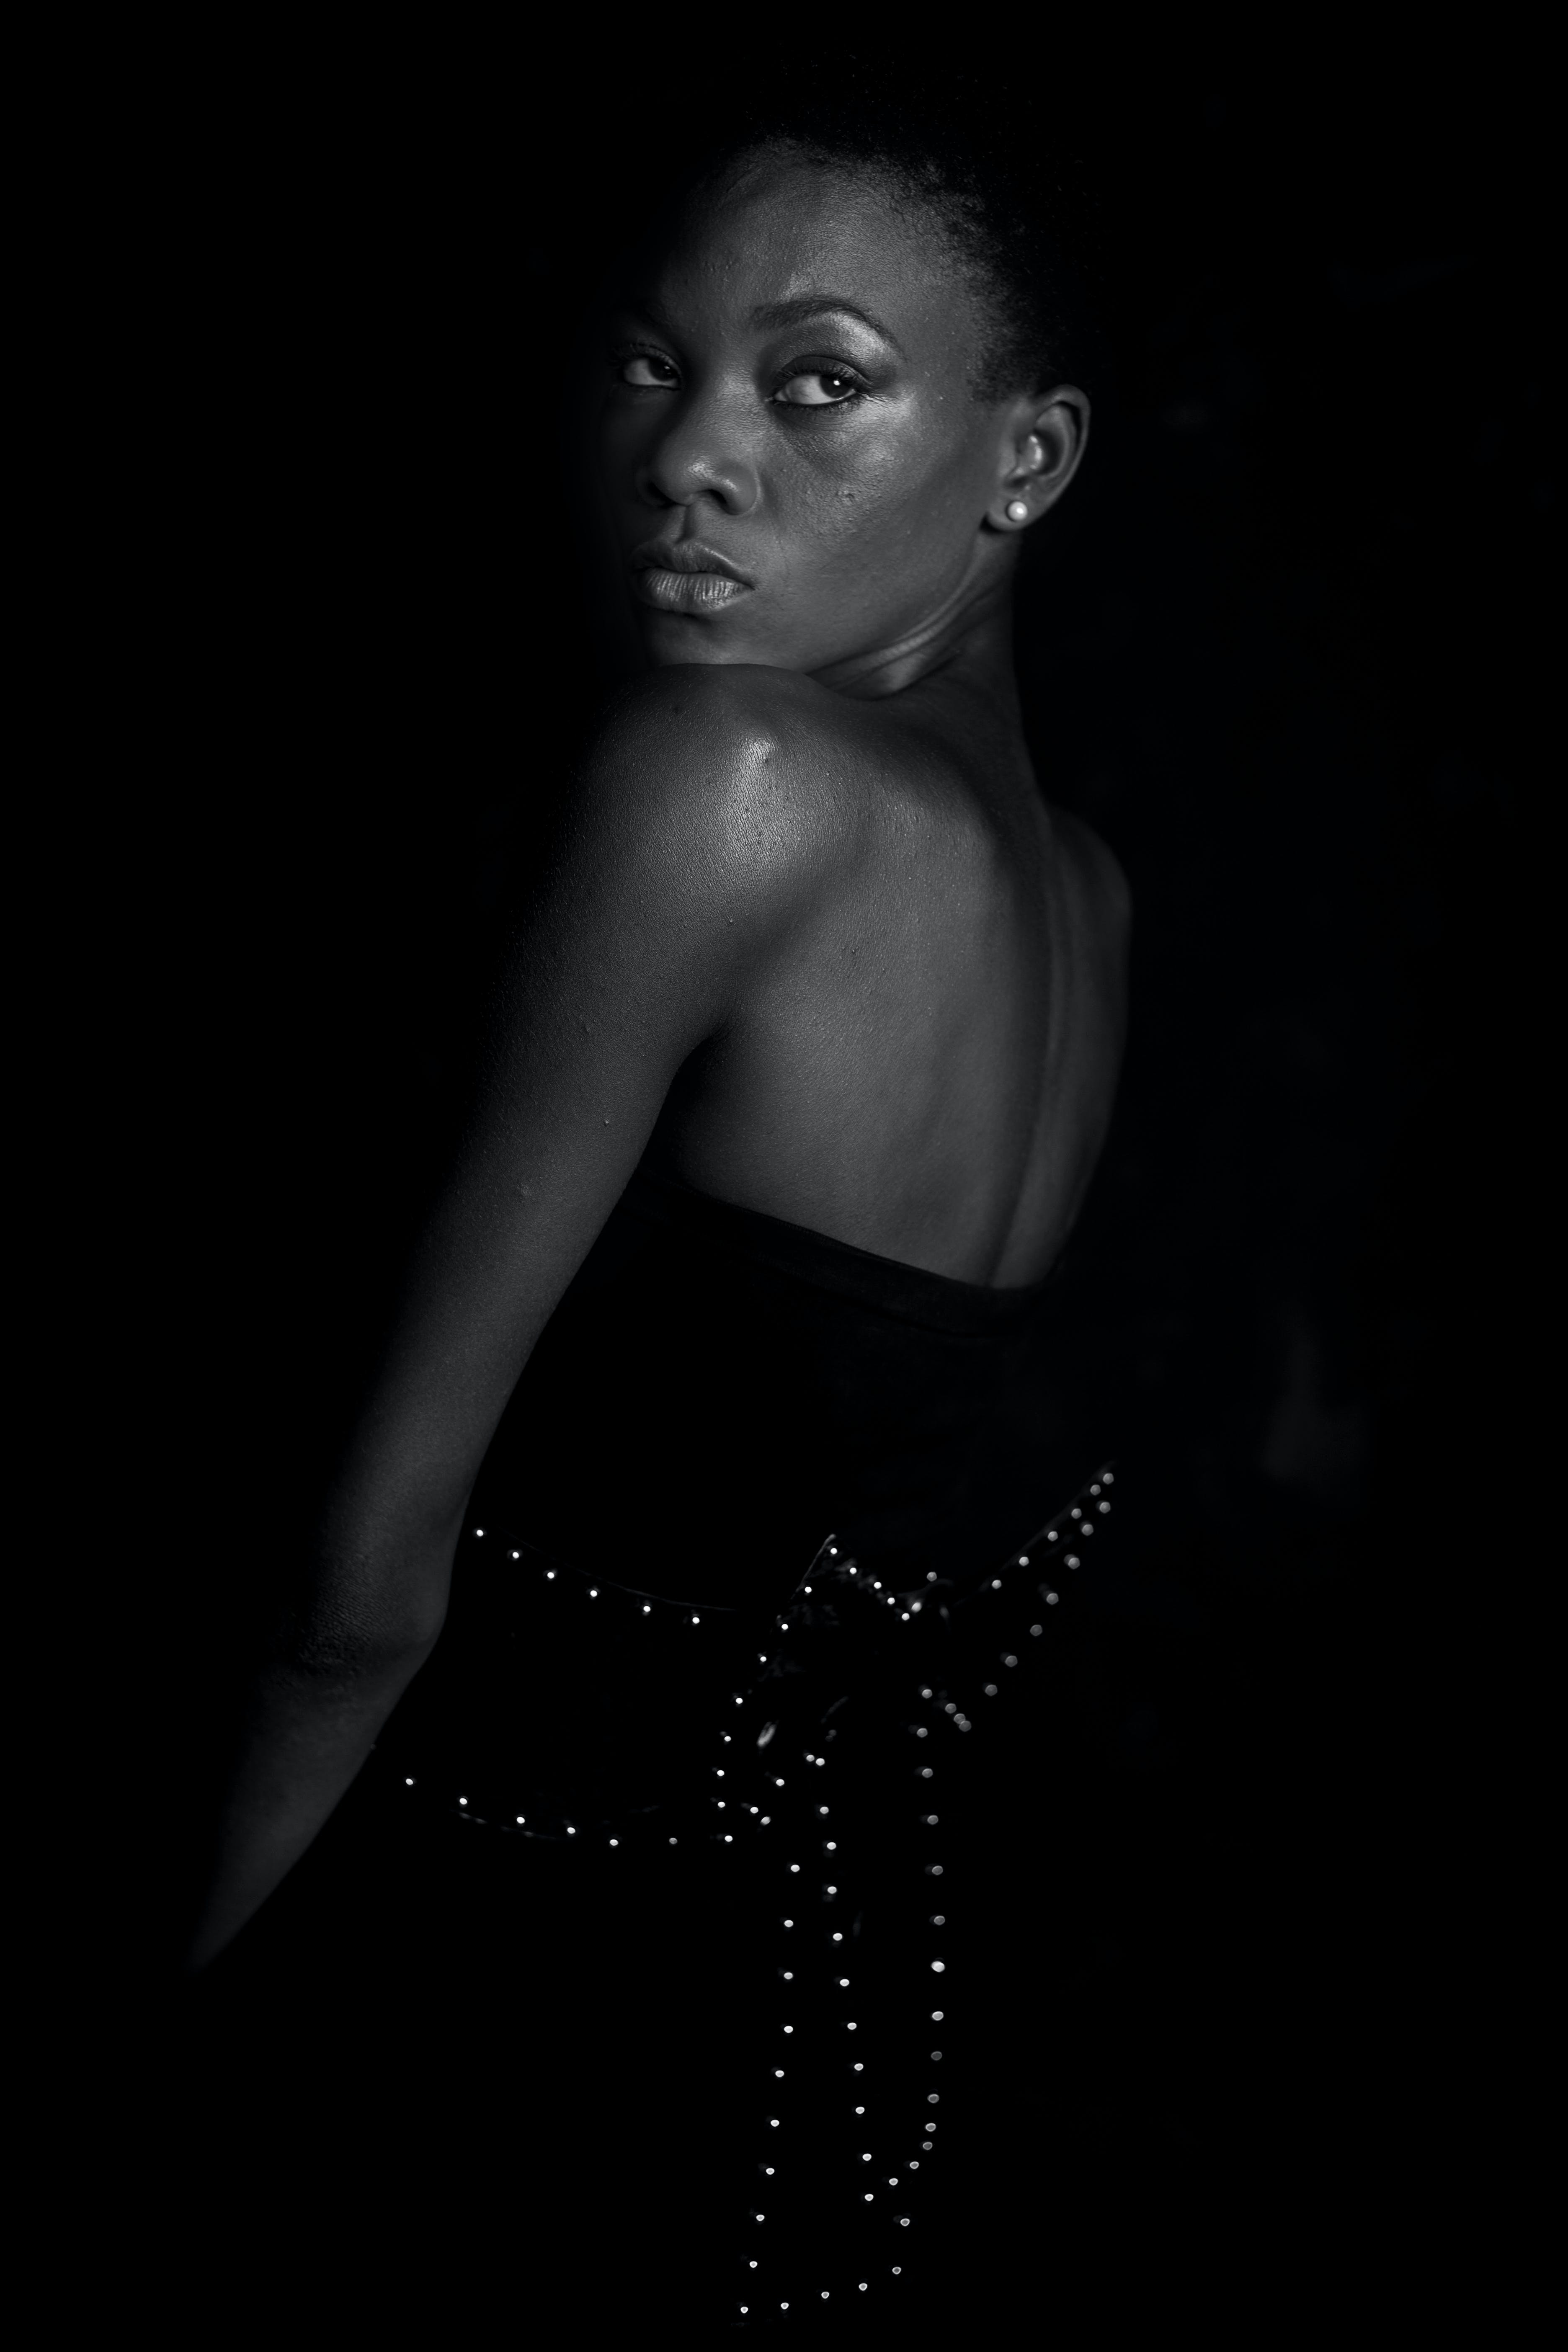 Grayscale Photography of Woman Wearing Bow-themed Dress